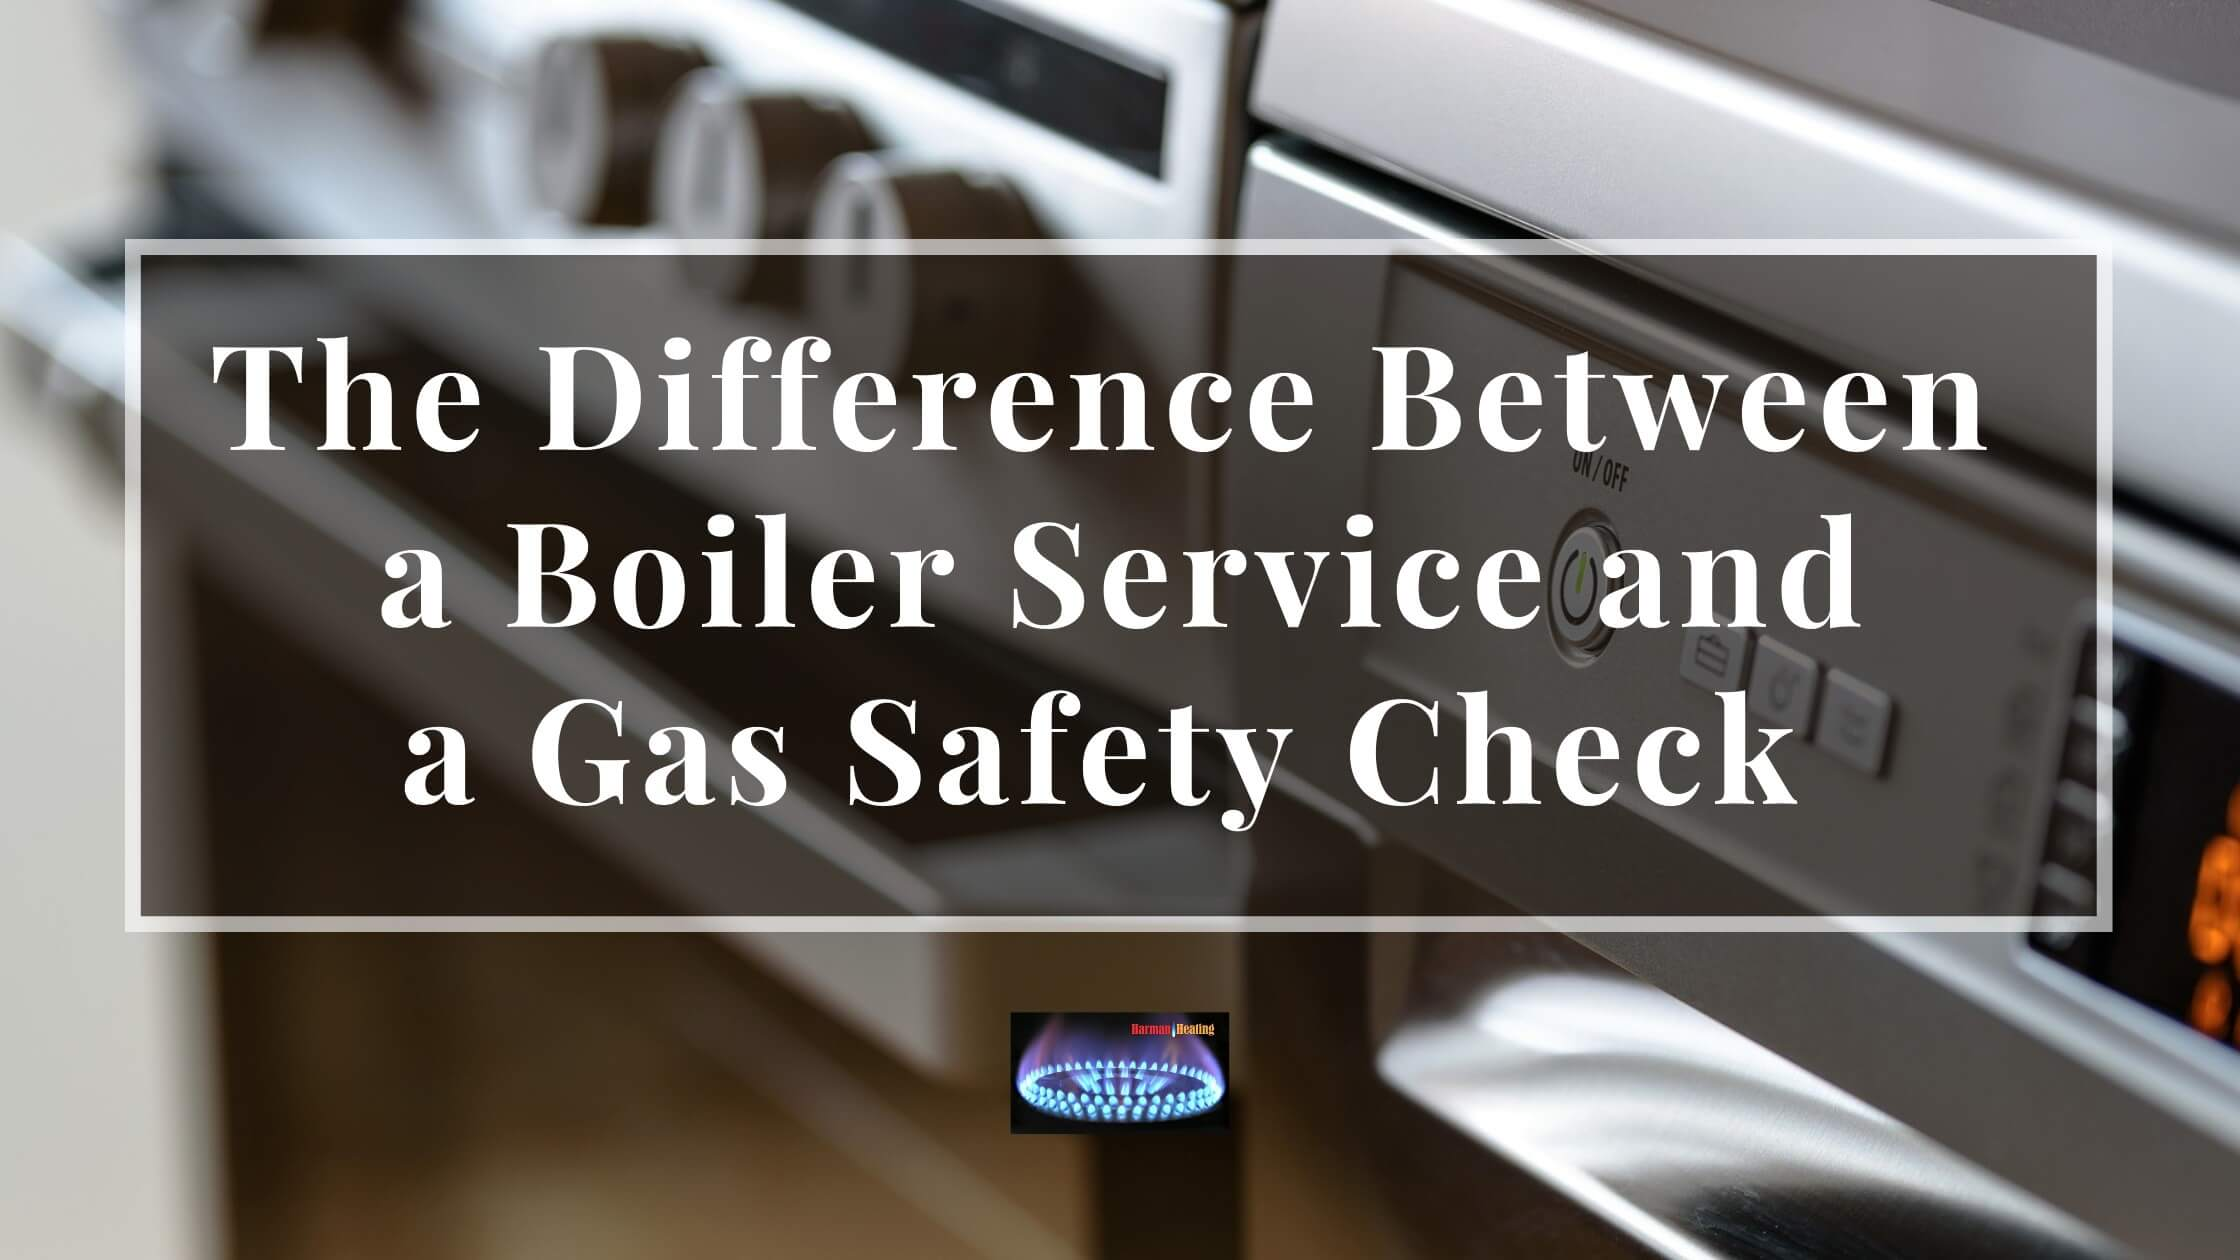 You are currently viewing The Difference Between A Boiler Service AND A Gas Safety Check